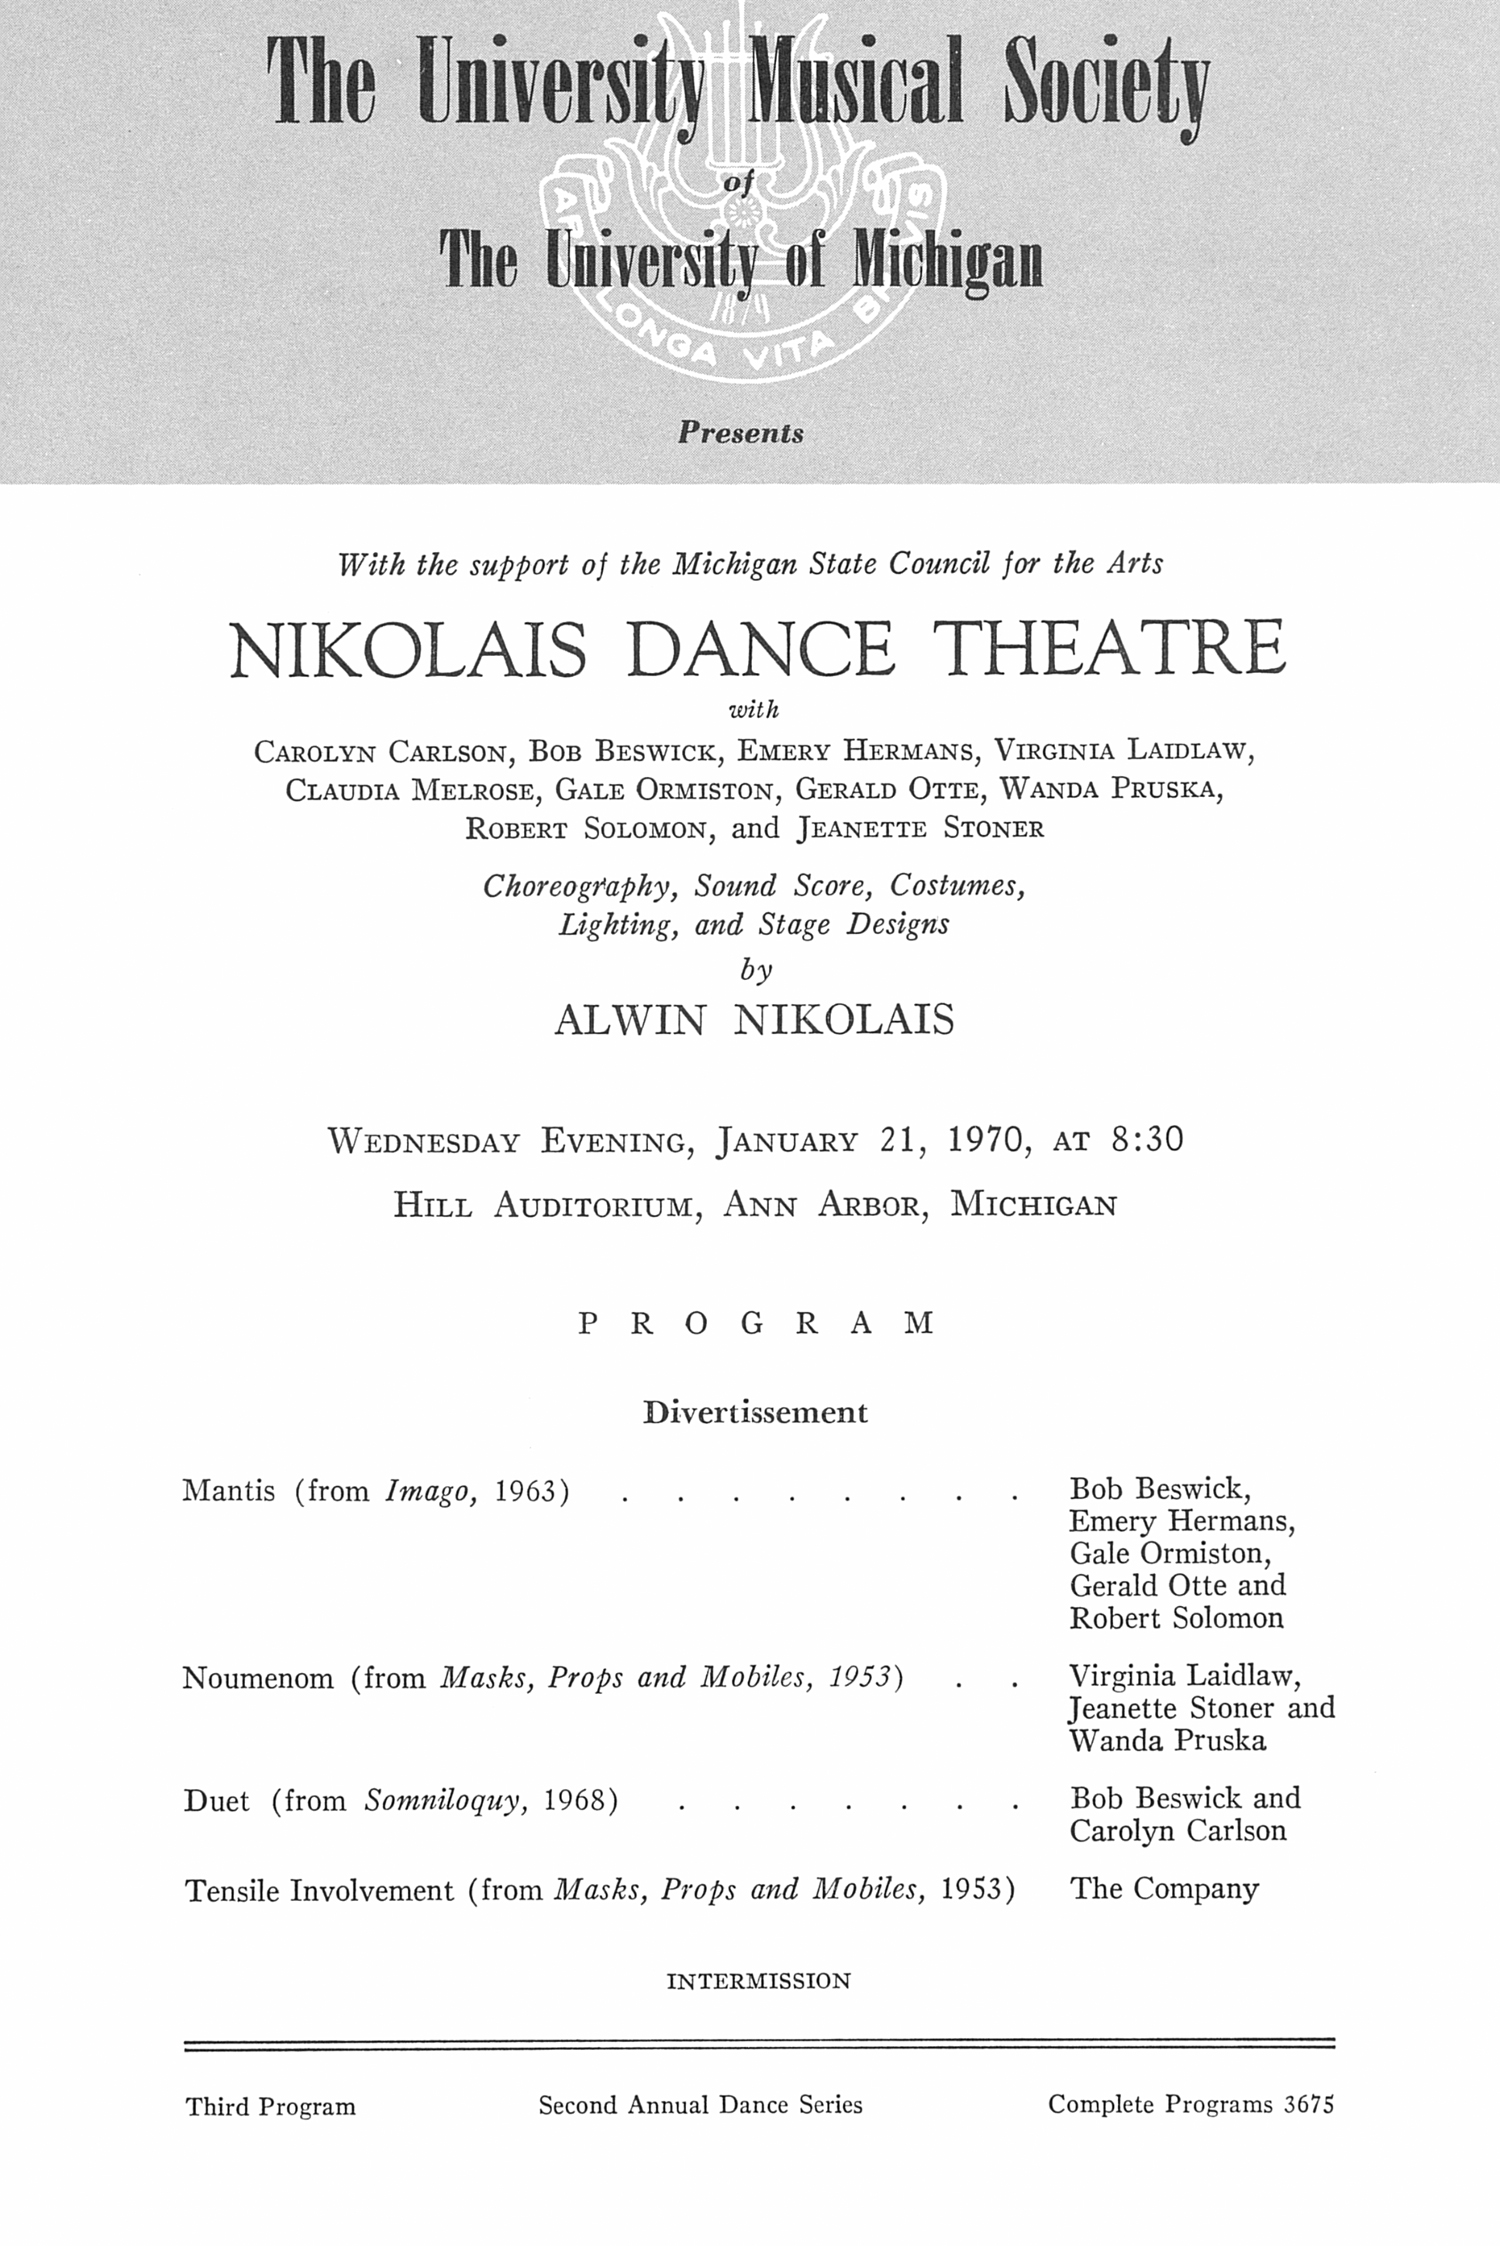 UMS Concert Program, January 21, 1970: Nikolais Dance Theatre -- Alwin Nikolais image